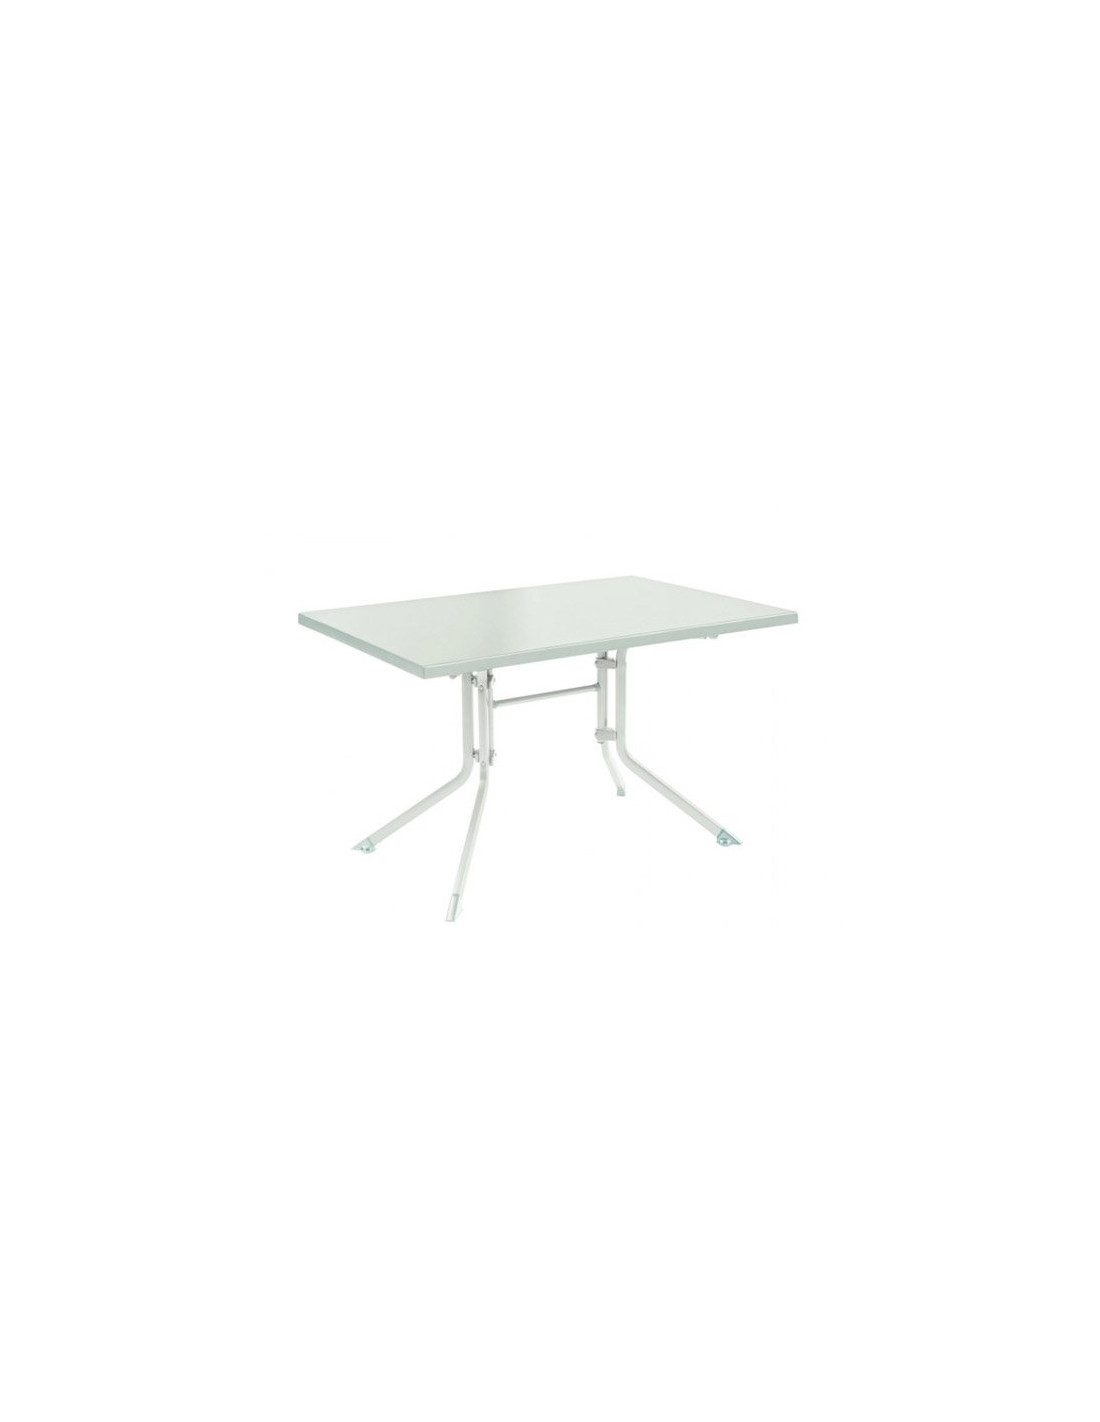 Table de jardin Kettler ADVANTAGE pliante carrée en aluminium